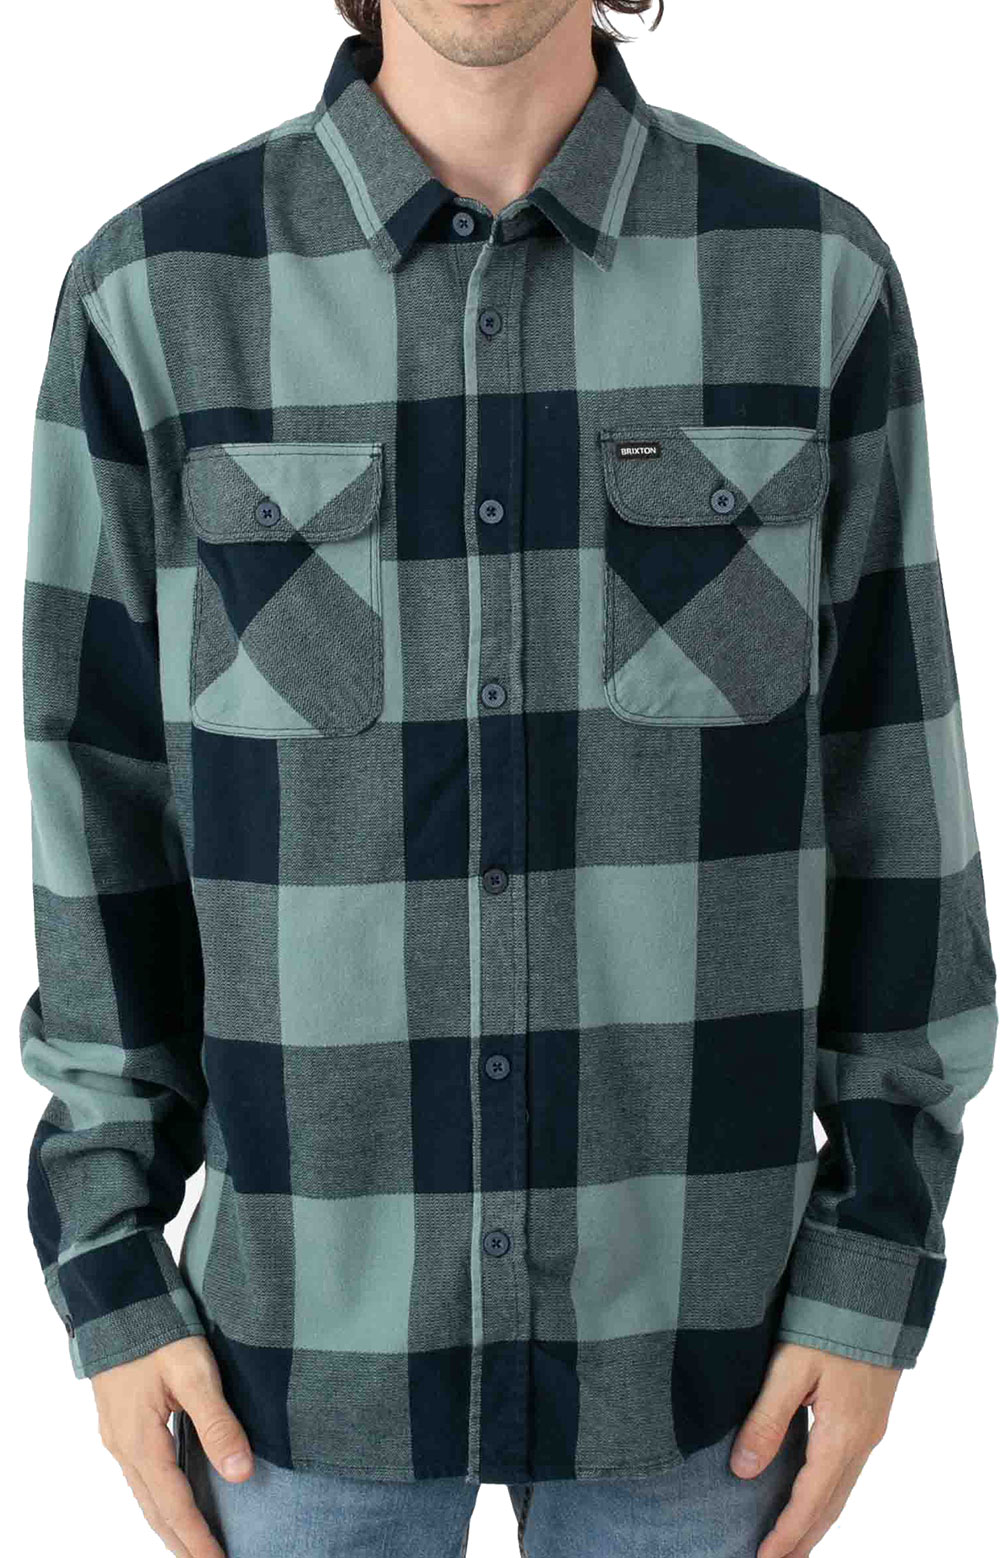 Bowery L/S Flannel - Washed Navy/Ocean